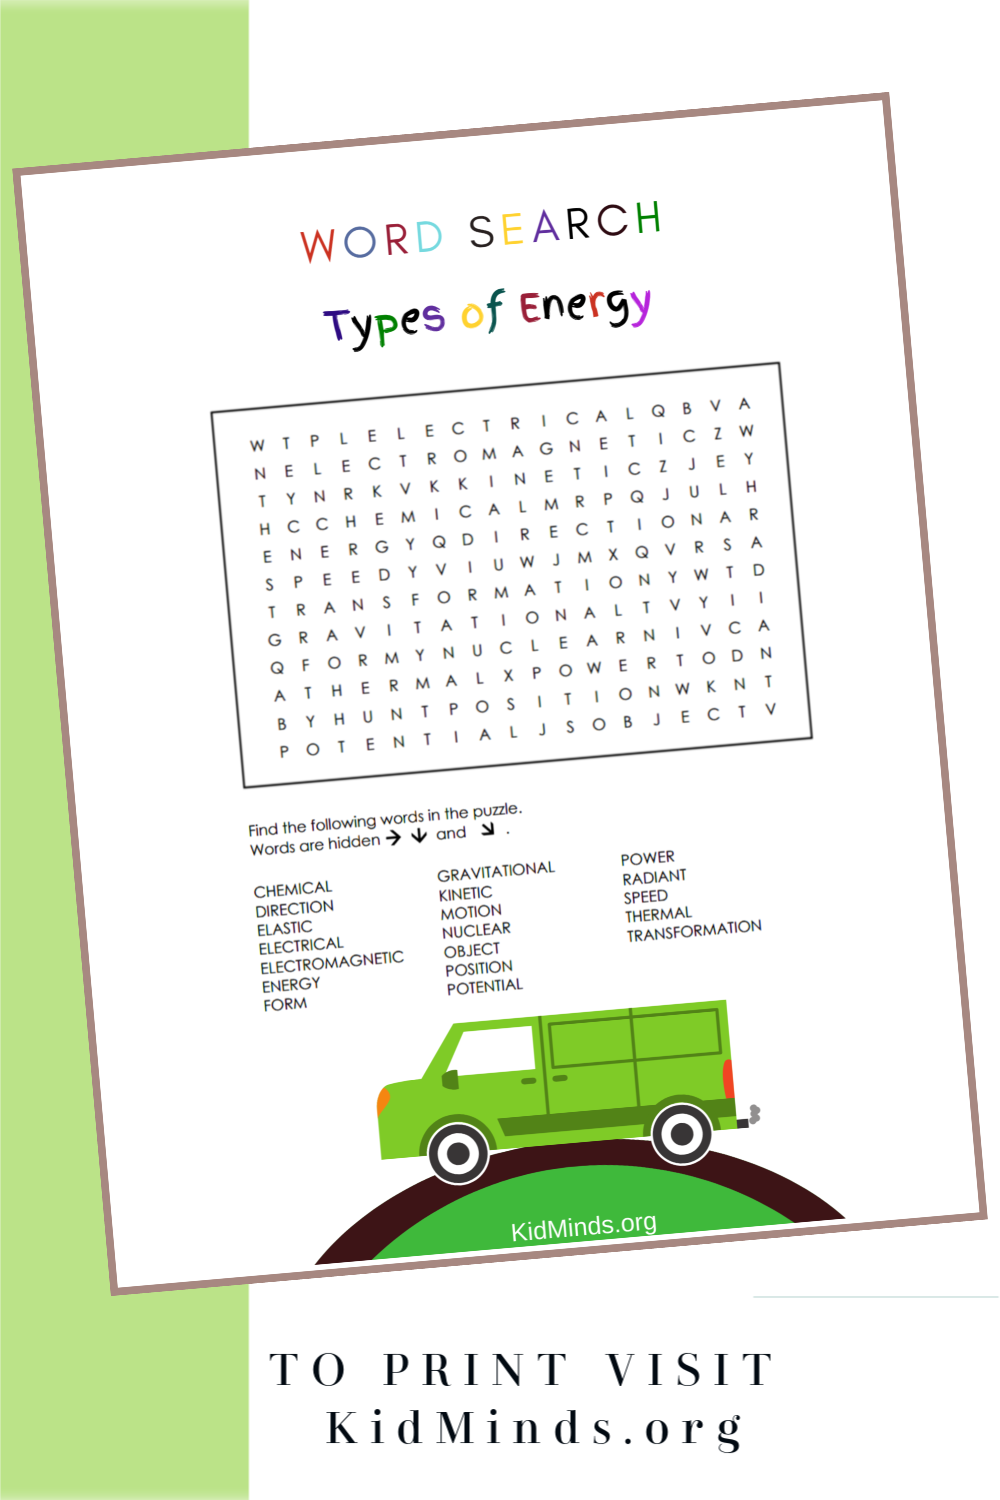 Introduce kids to the concepts of potential and kinetic energy with the help of Yoda, rump, and a Star Wars LEGO wheel droid. #creativelearning #kidsactivities #handsonlearning #kidminds #scienceforkids #printables